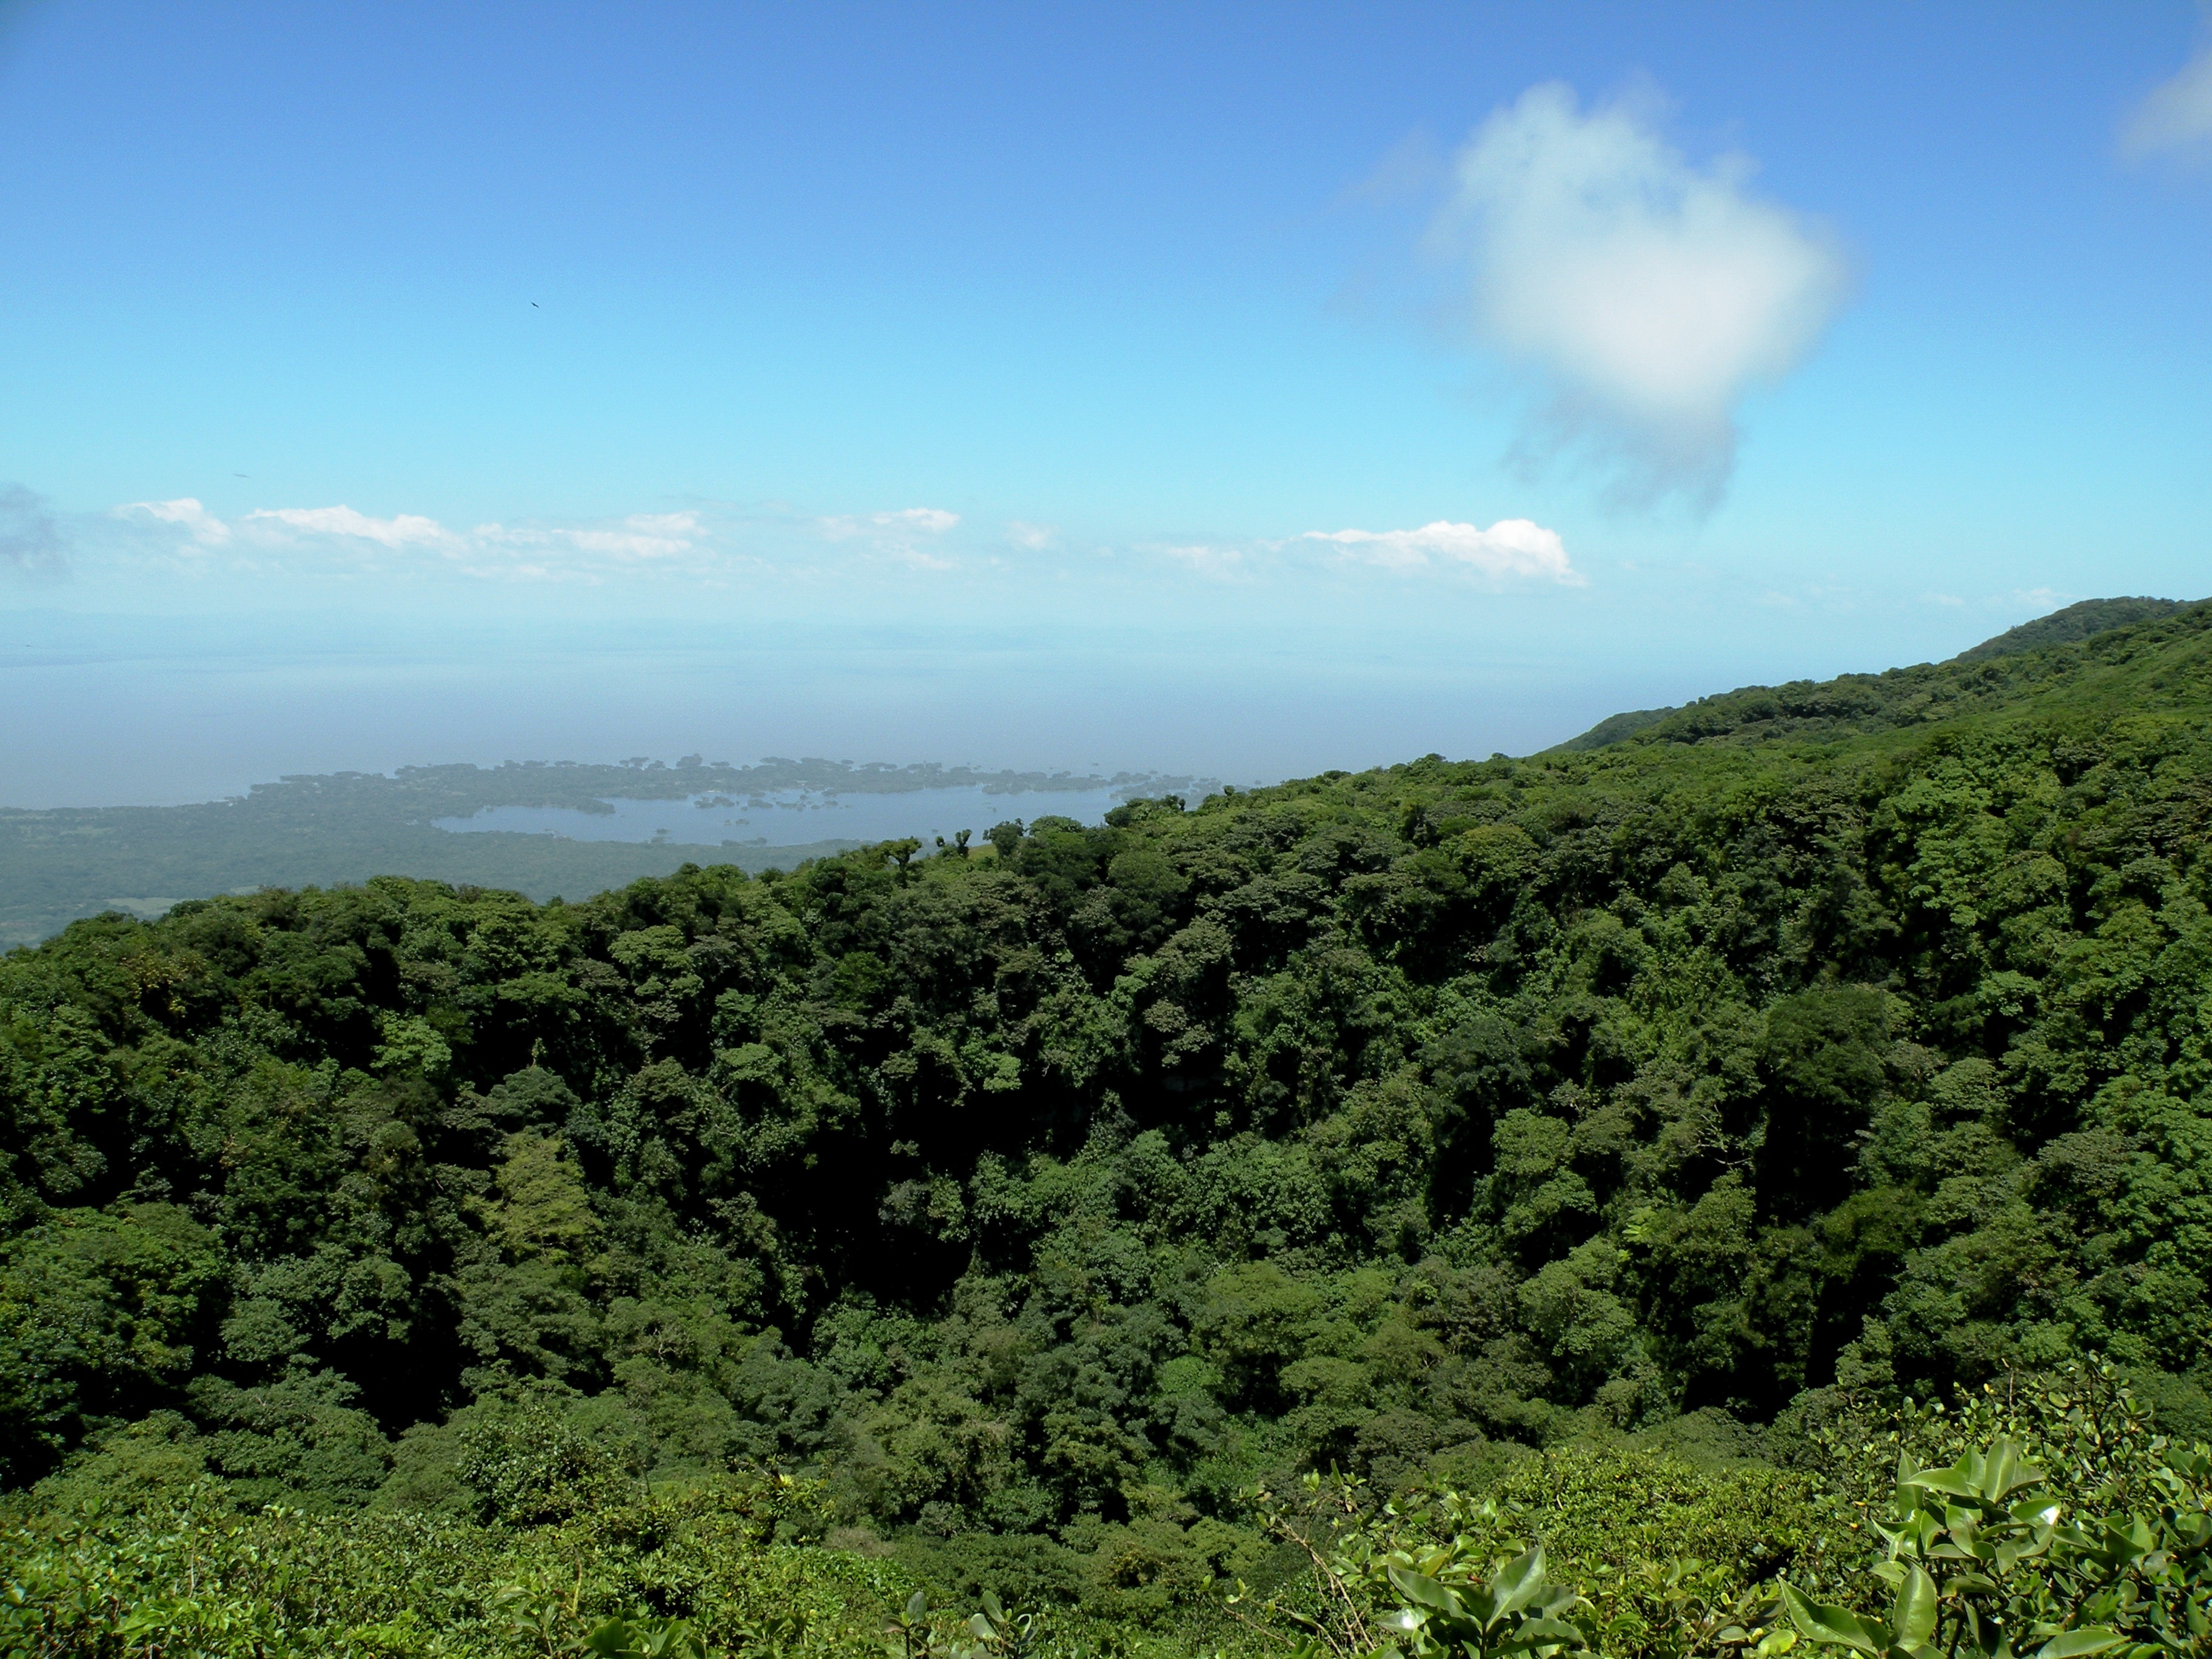 A photo taken high above a rainforest showing the tops of trees